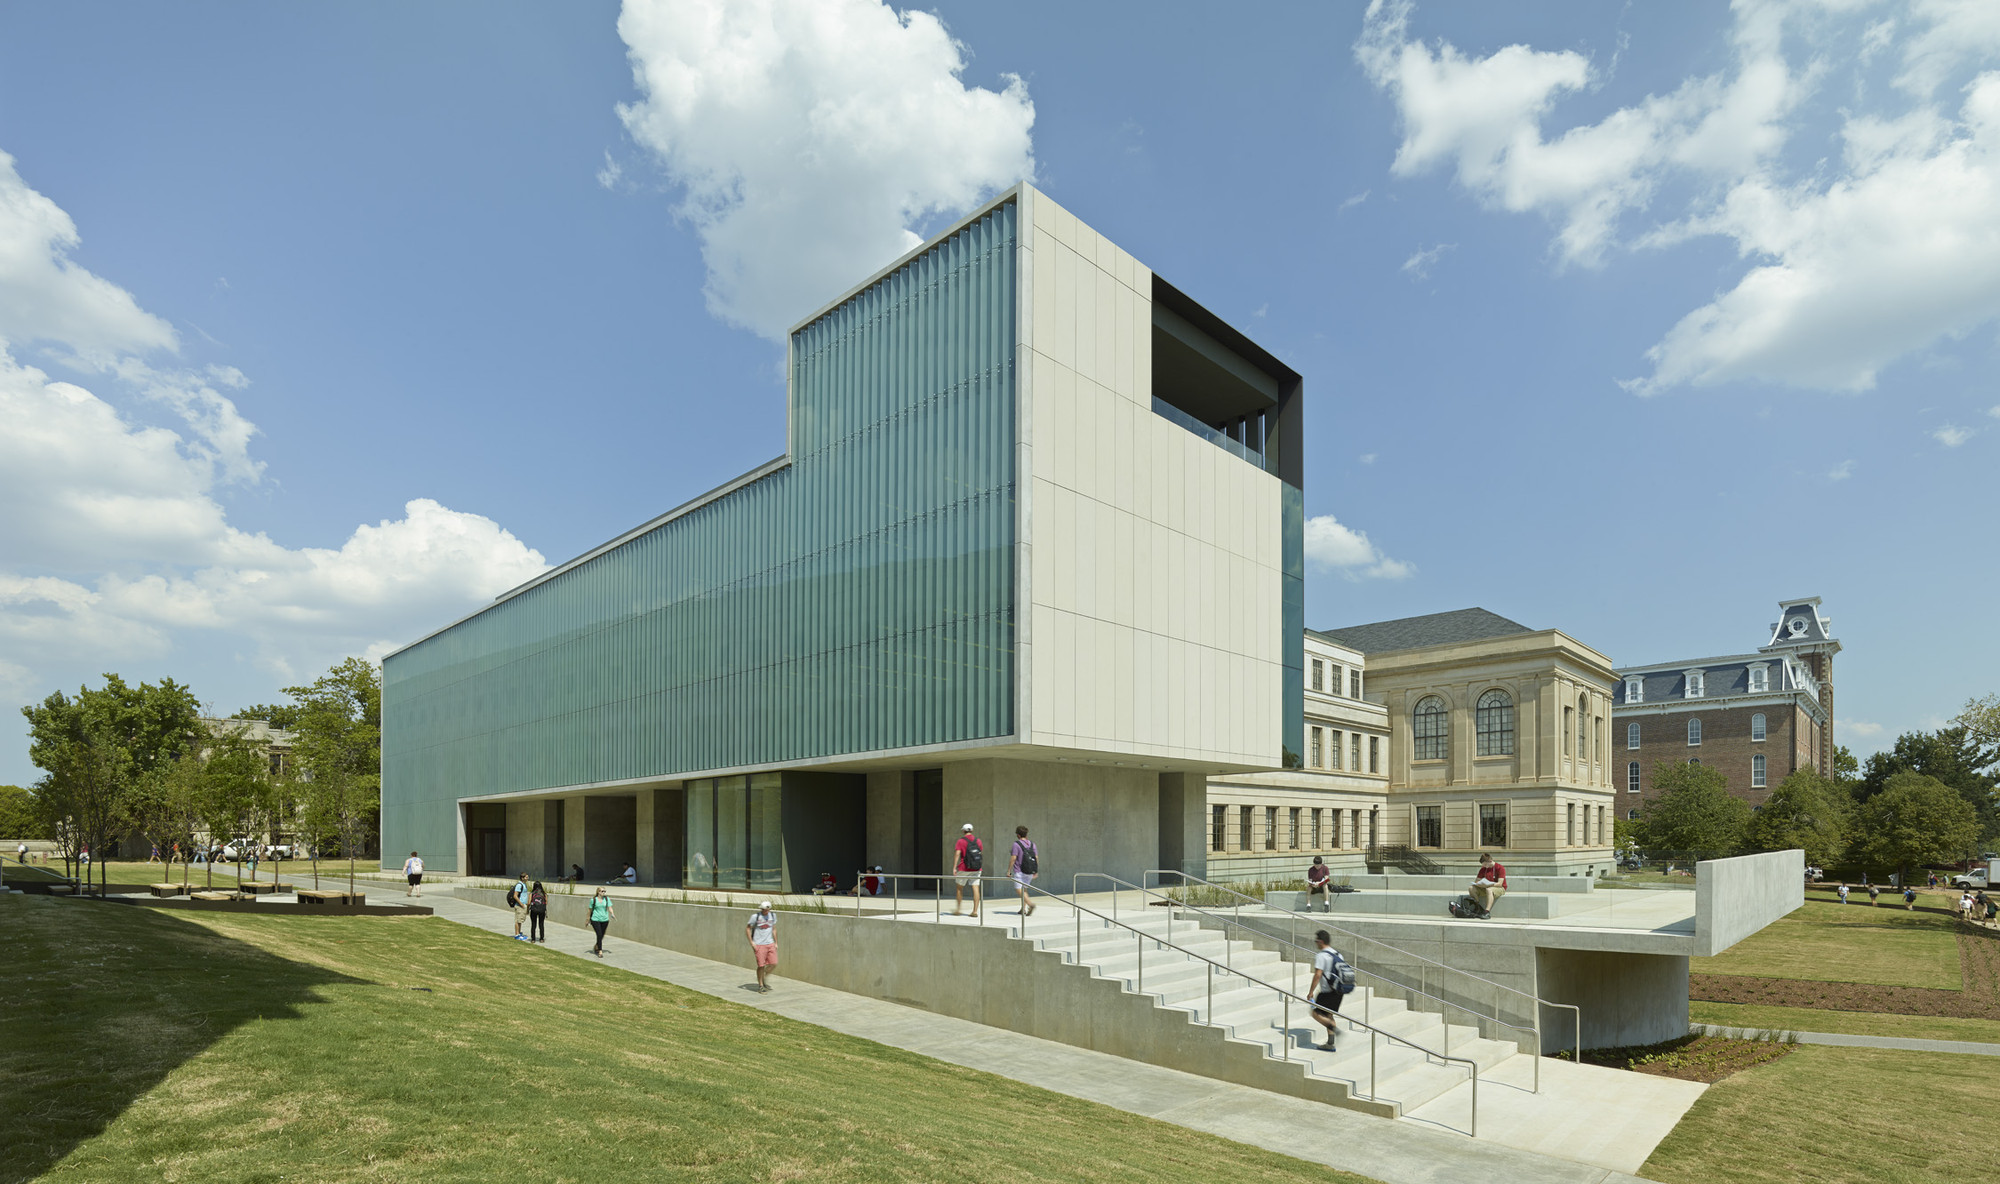 Vol Walker Hall & Steven L Anderson Design Center